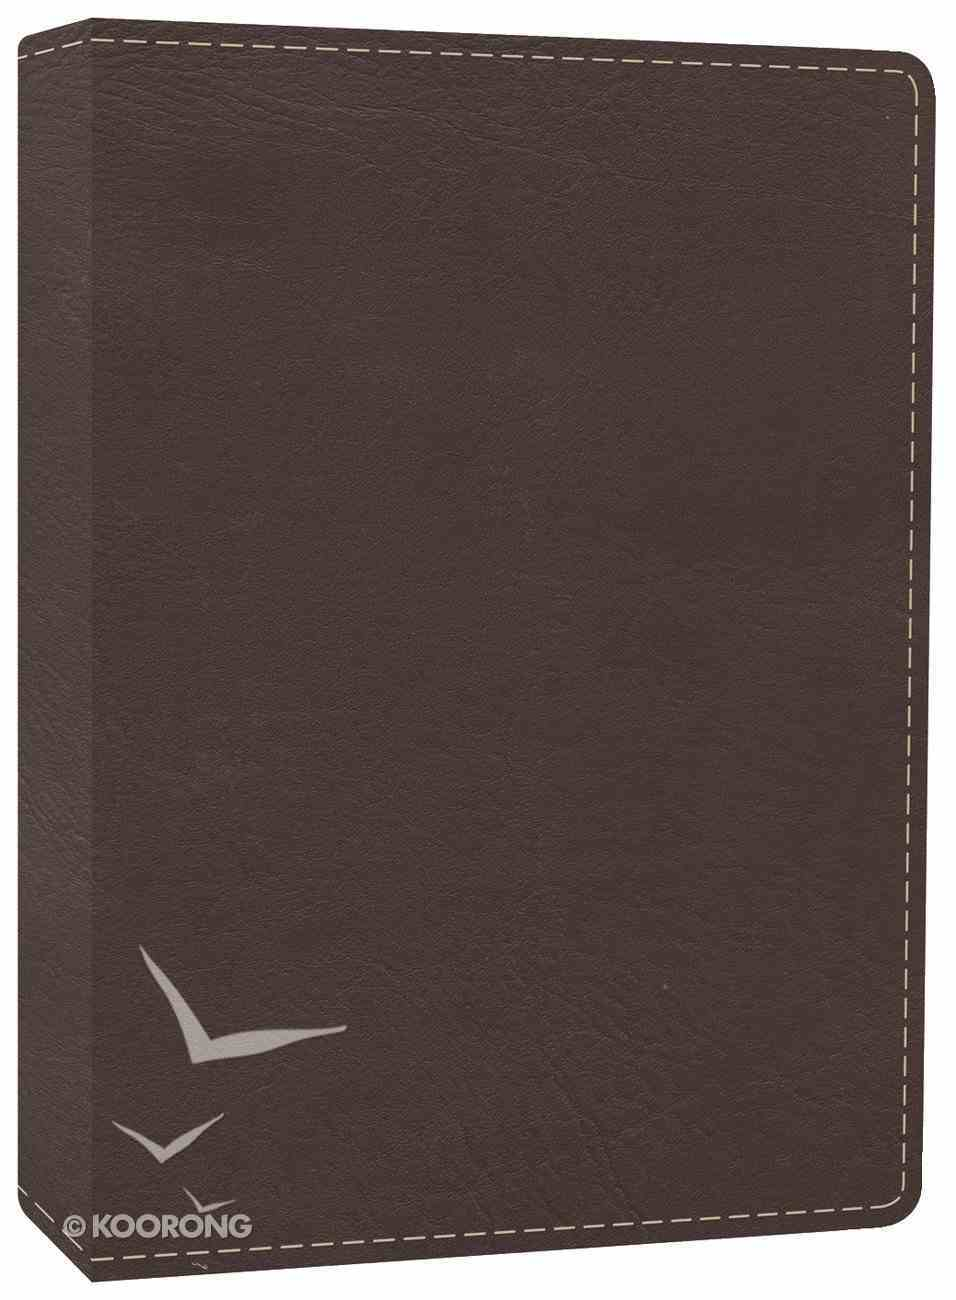 HCSB the Mission of God Study Bible Brown Imitation Leather